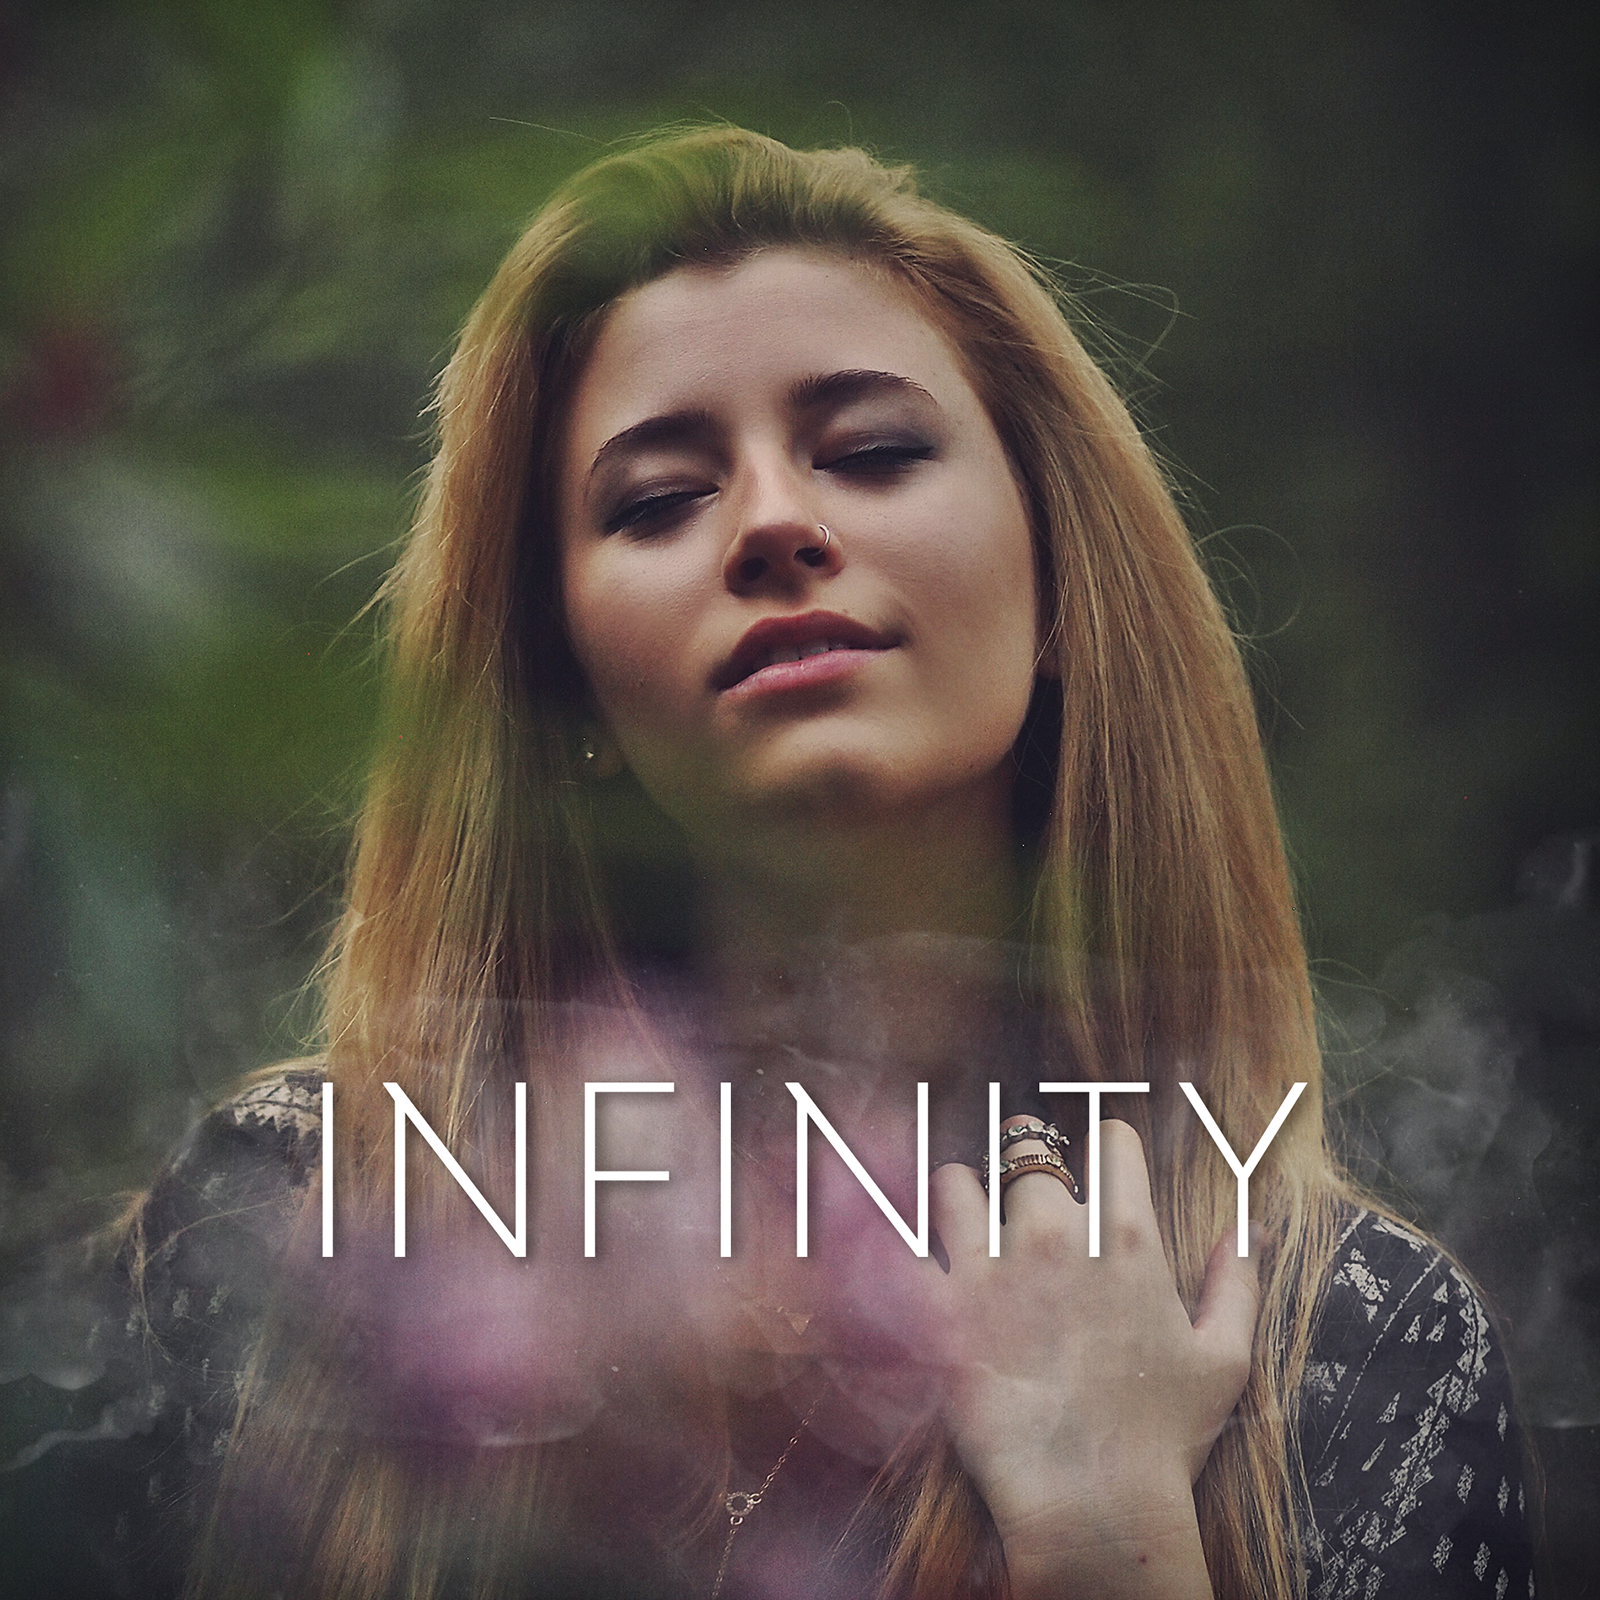 Infinity CompFEB13@16x16png (1).png